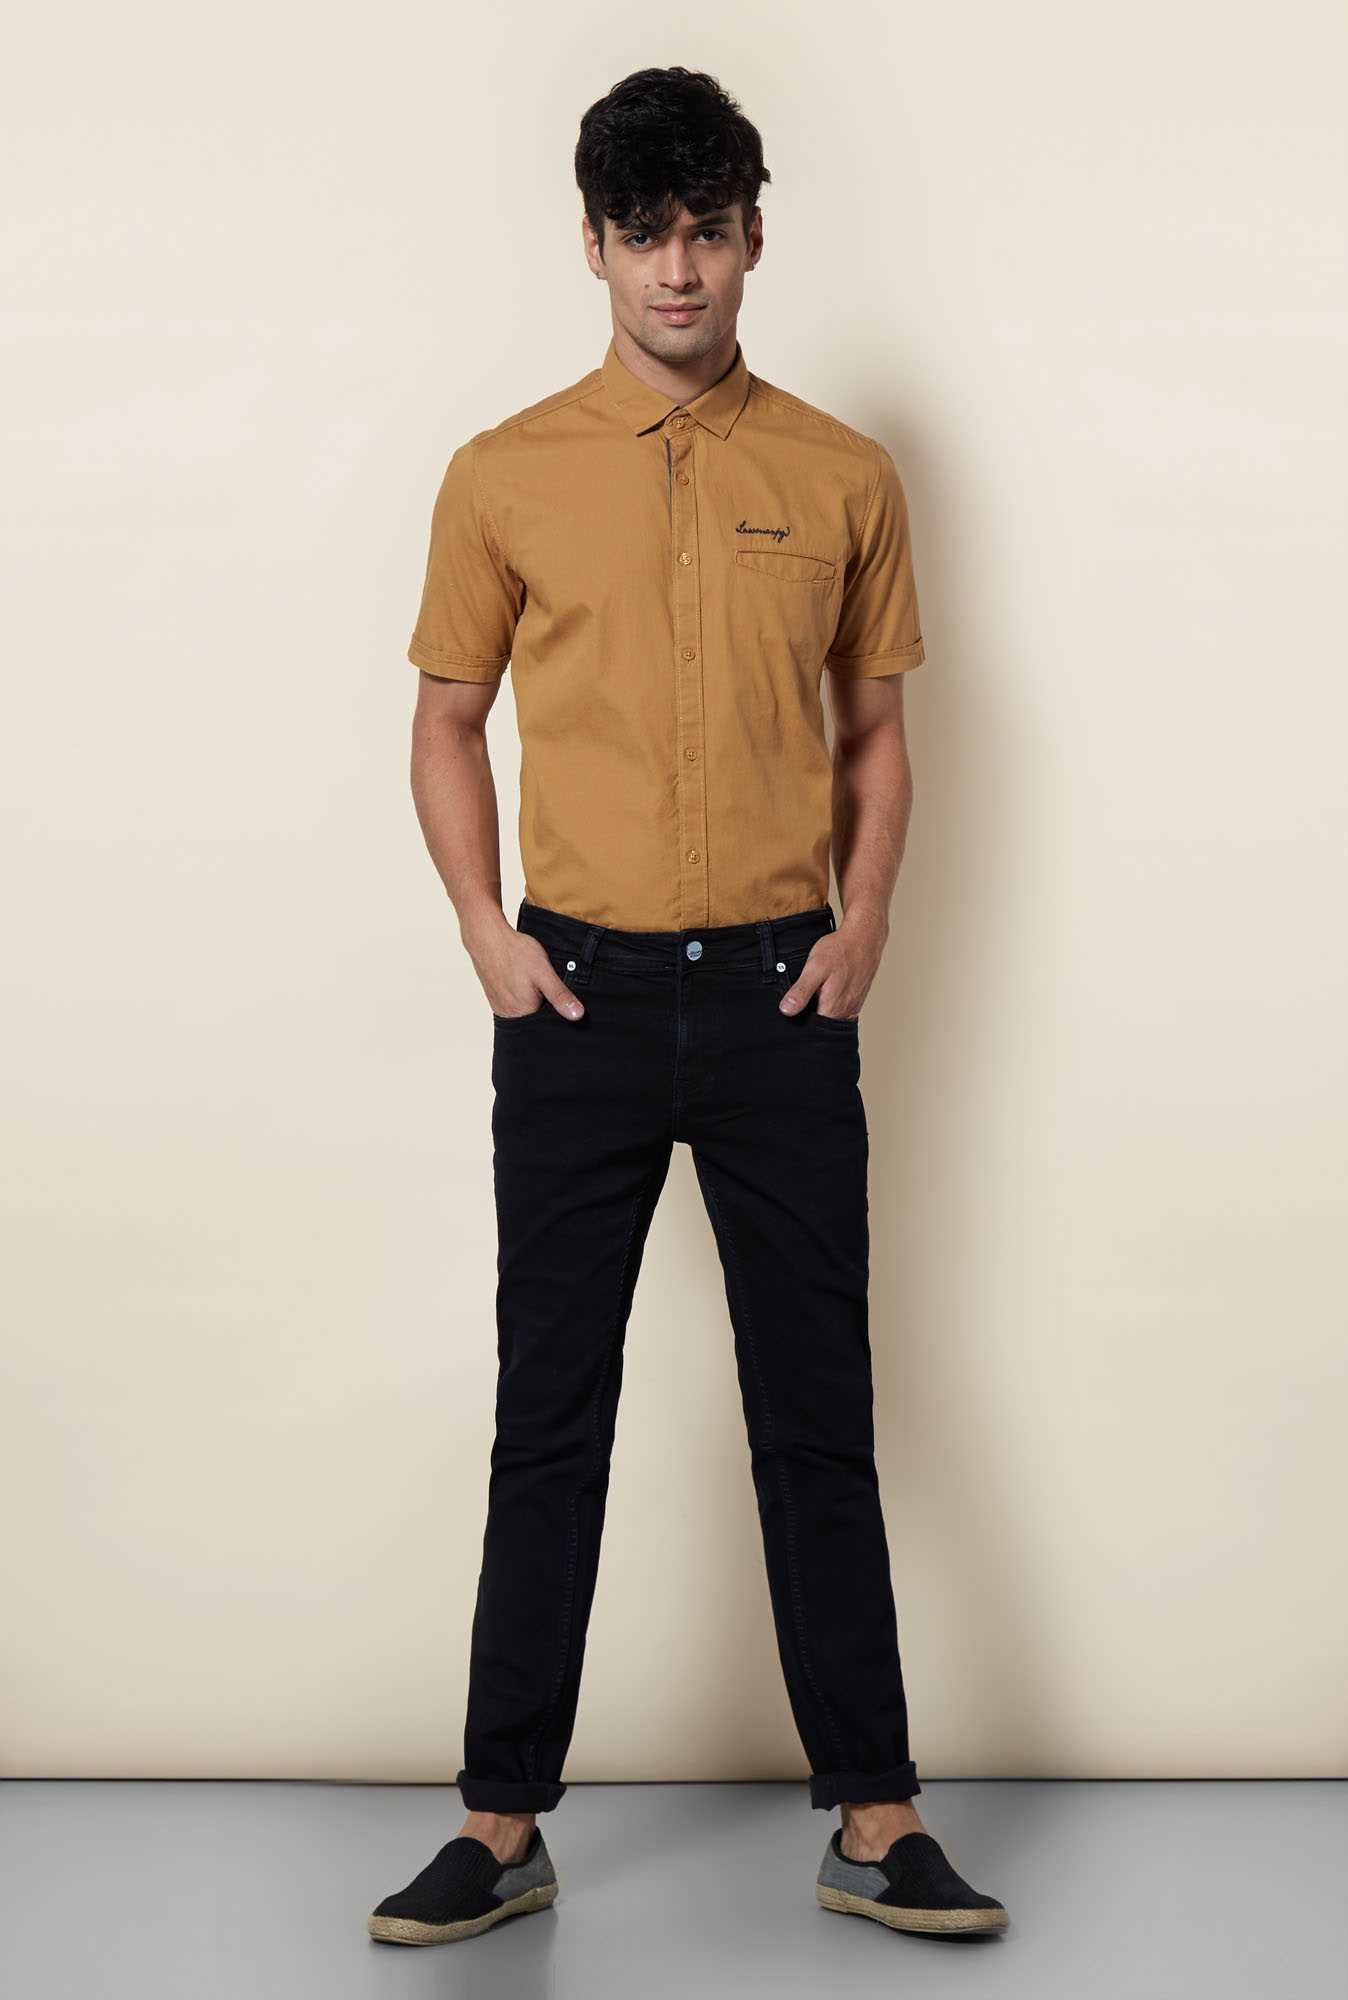 Lawman Khaki Short Sleeve Casual Shirt